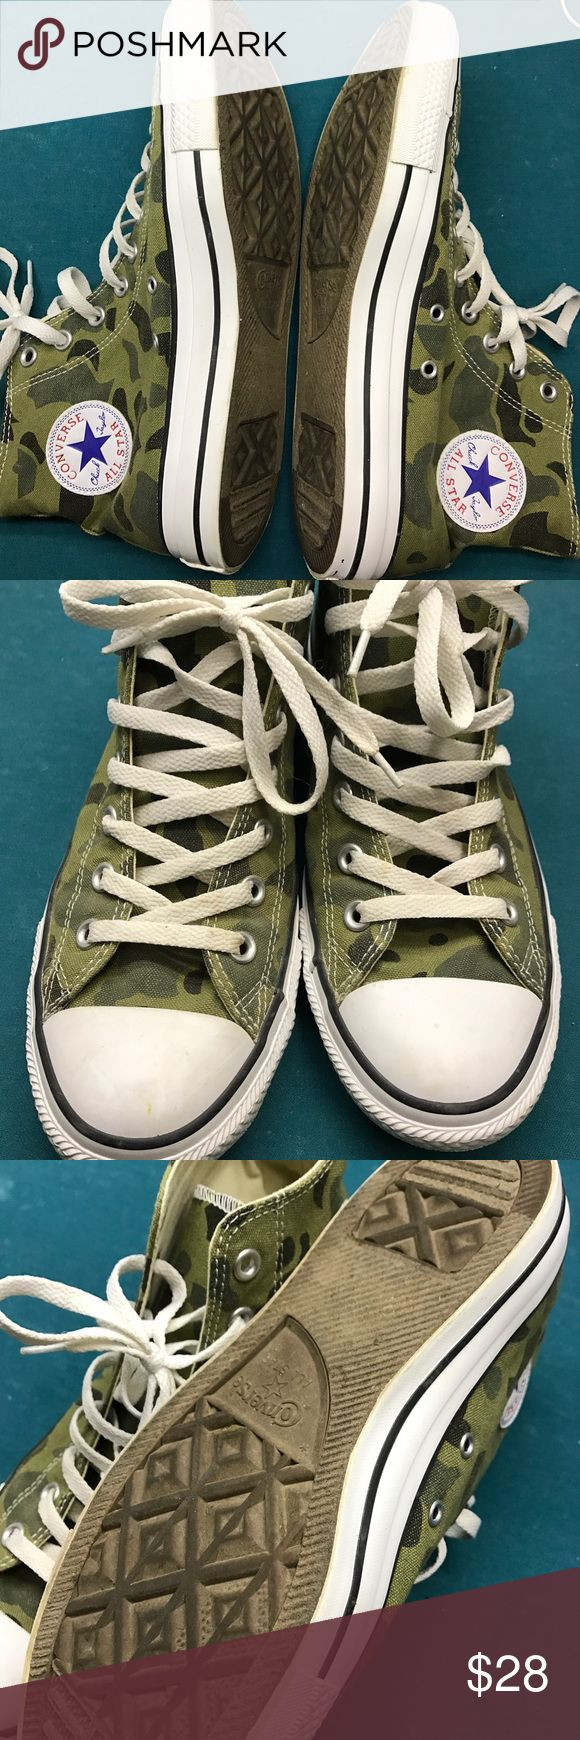 Men's camo converse size 9 Used but in good condition. Make an offer! Converse Shoes